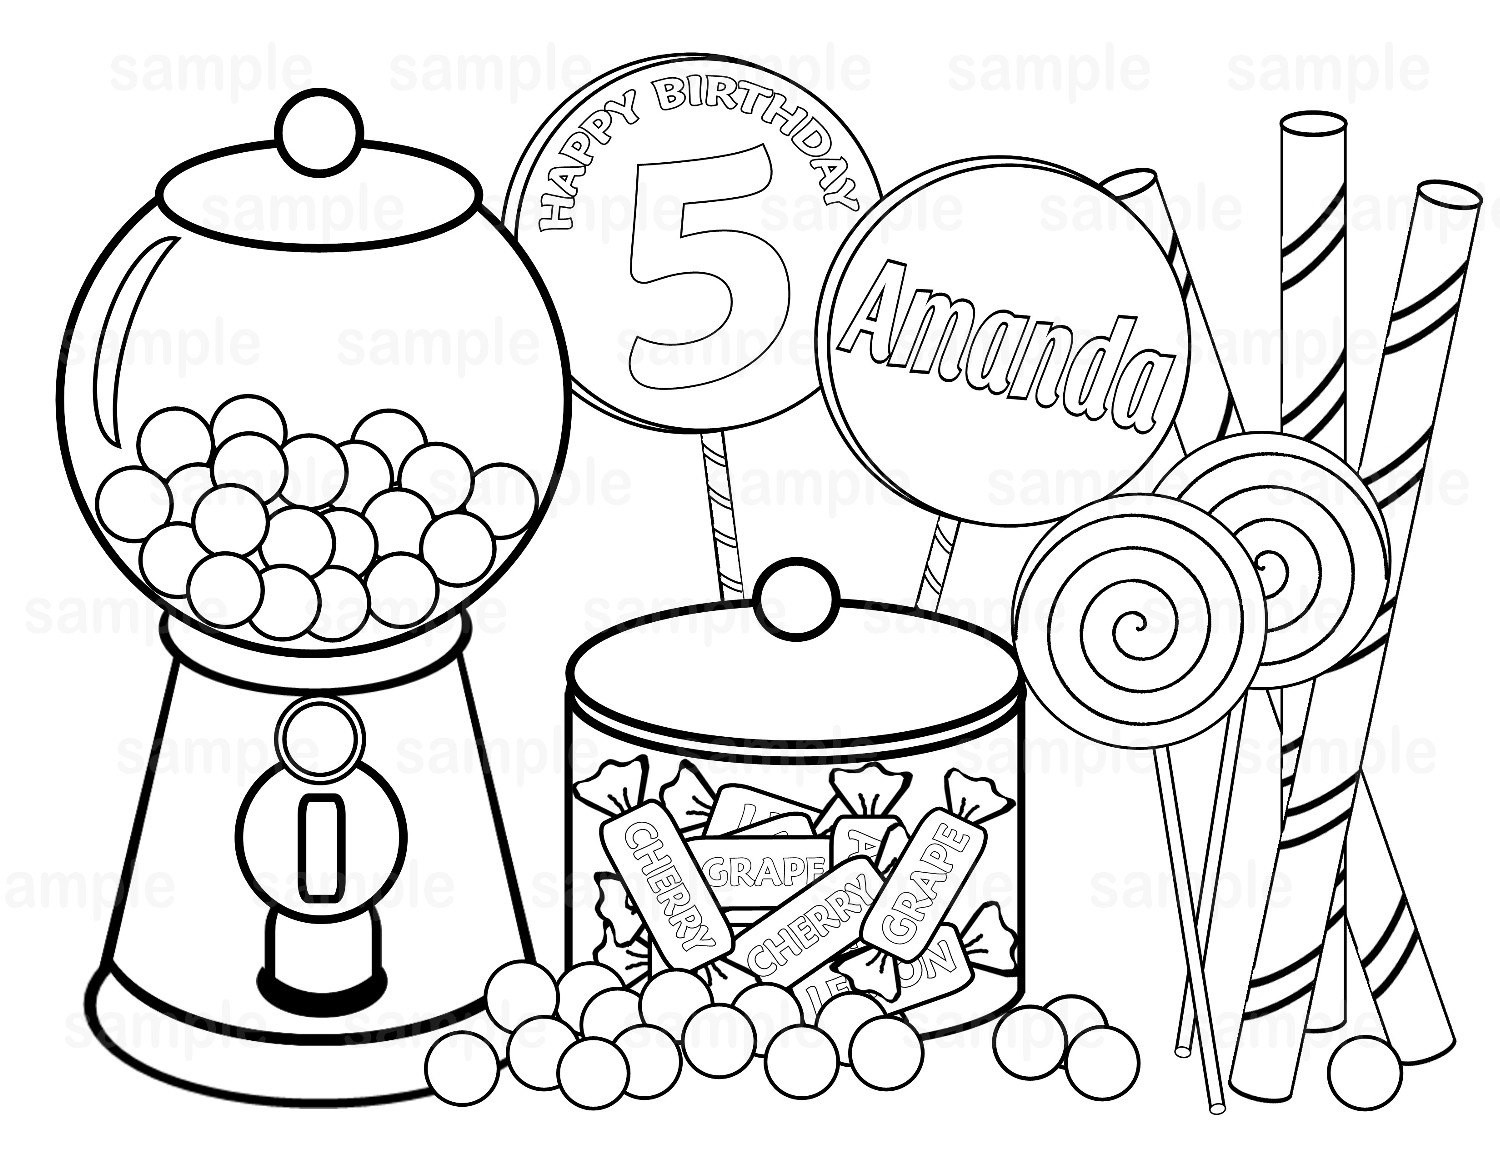 1500x1159 Candyland Coloring Pages Coloringsuite Com Complete Color